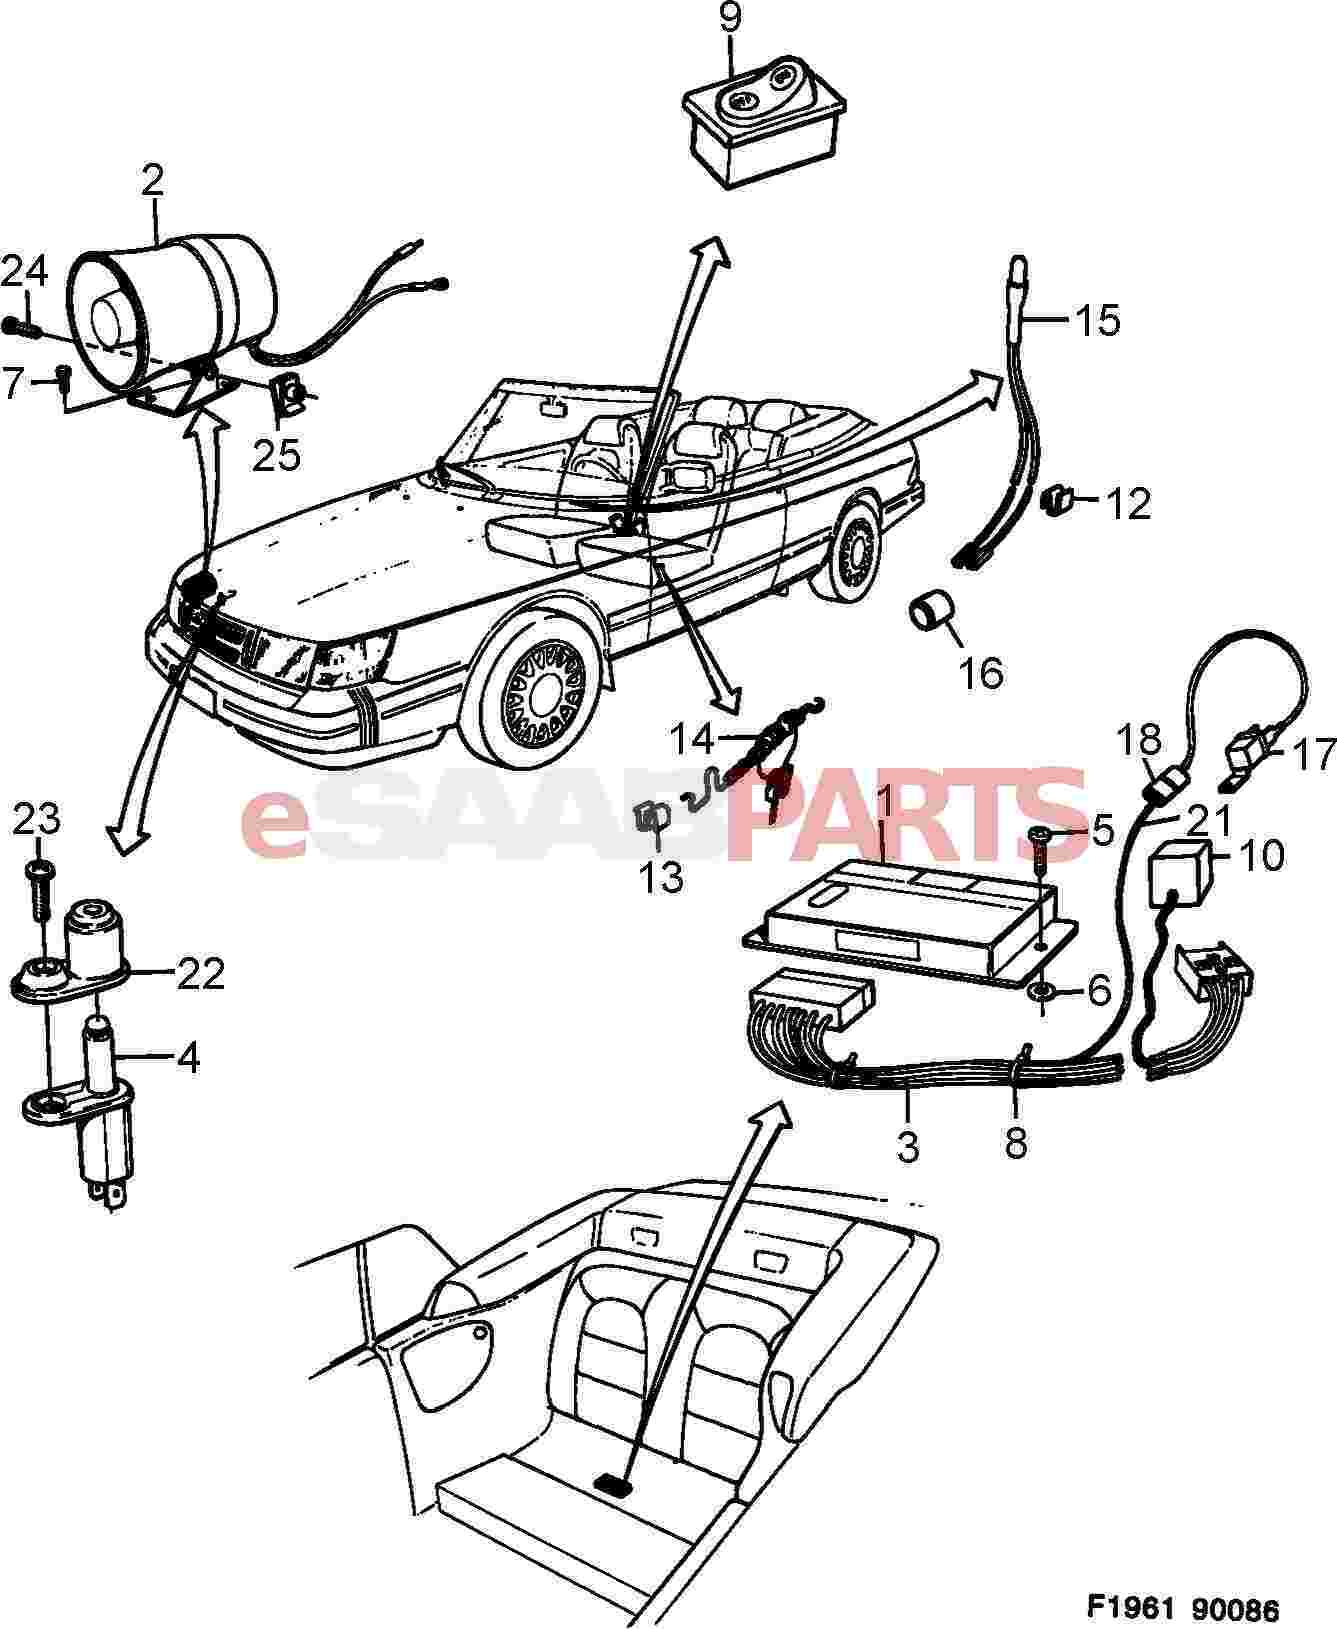 2004 saab convertible parts diagram